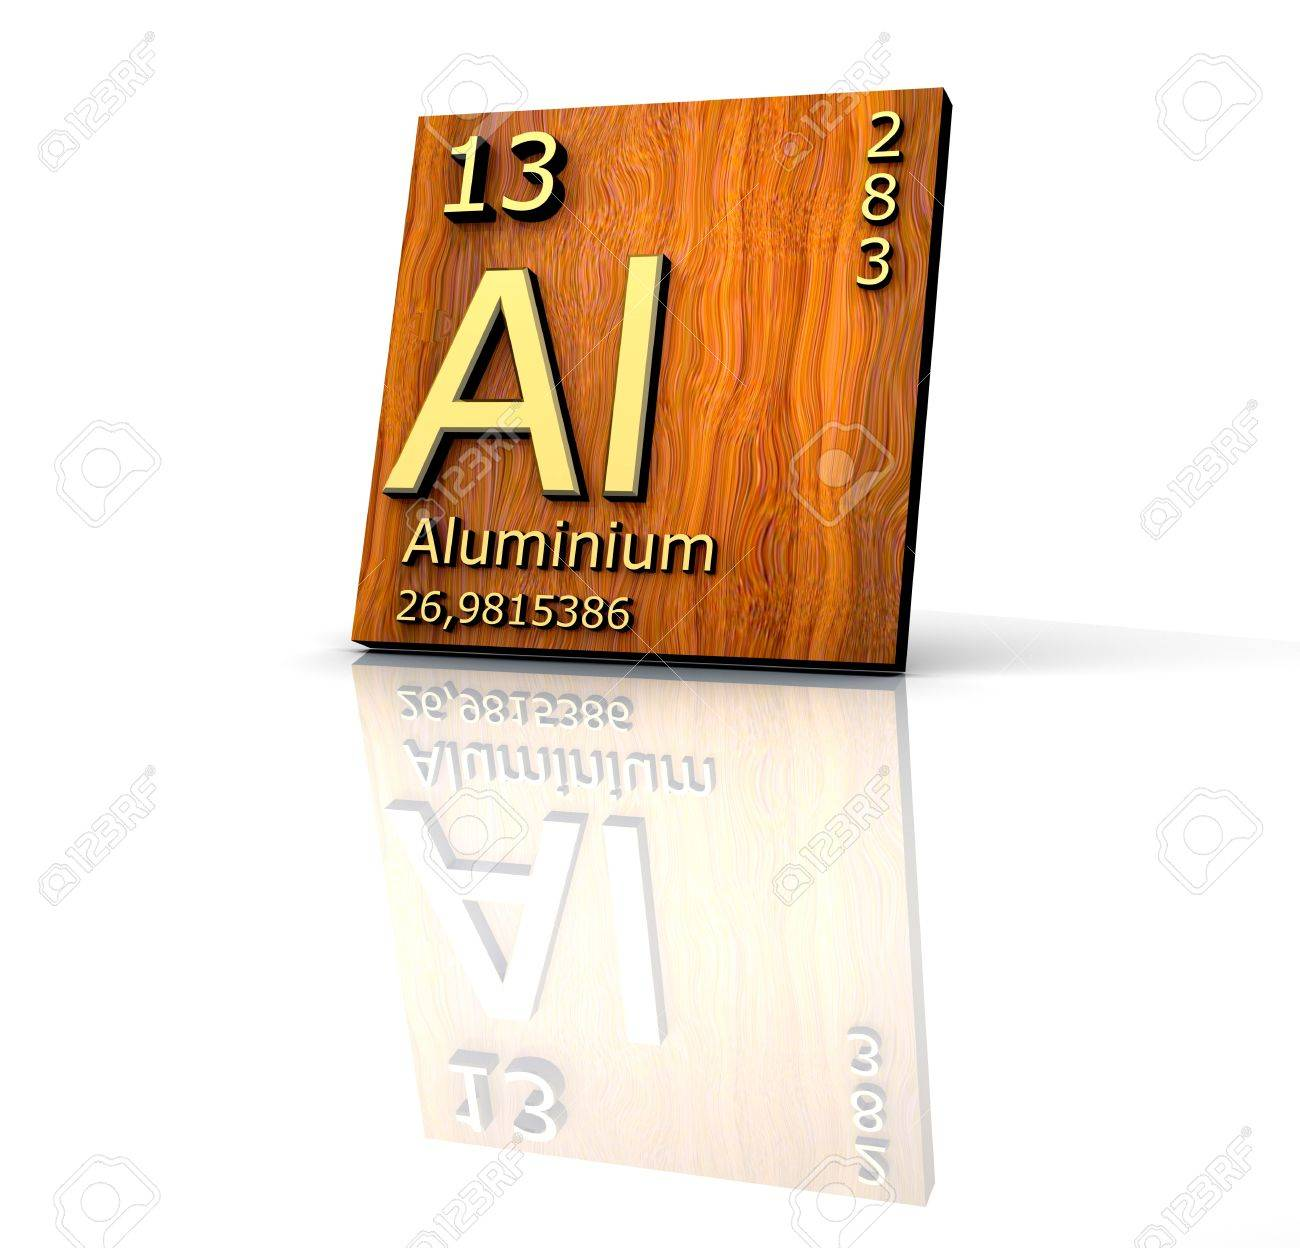 Aluminum form Periodic Table of Elements - wood board Stock Photo - 6973565